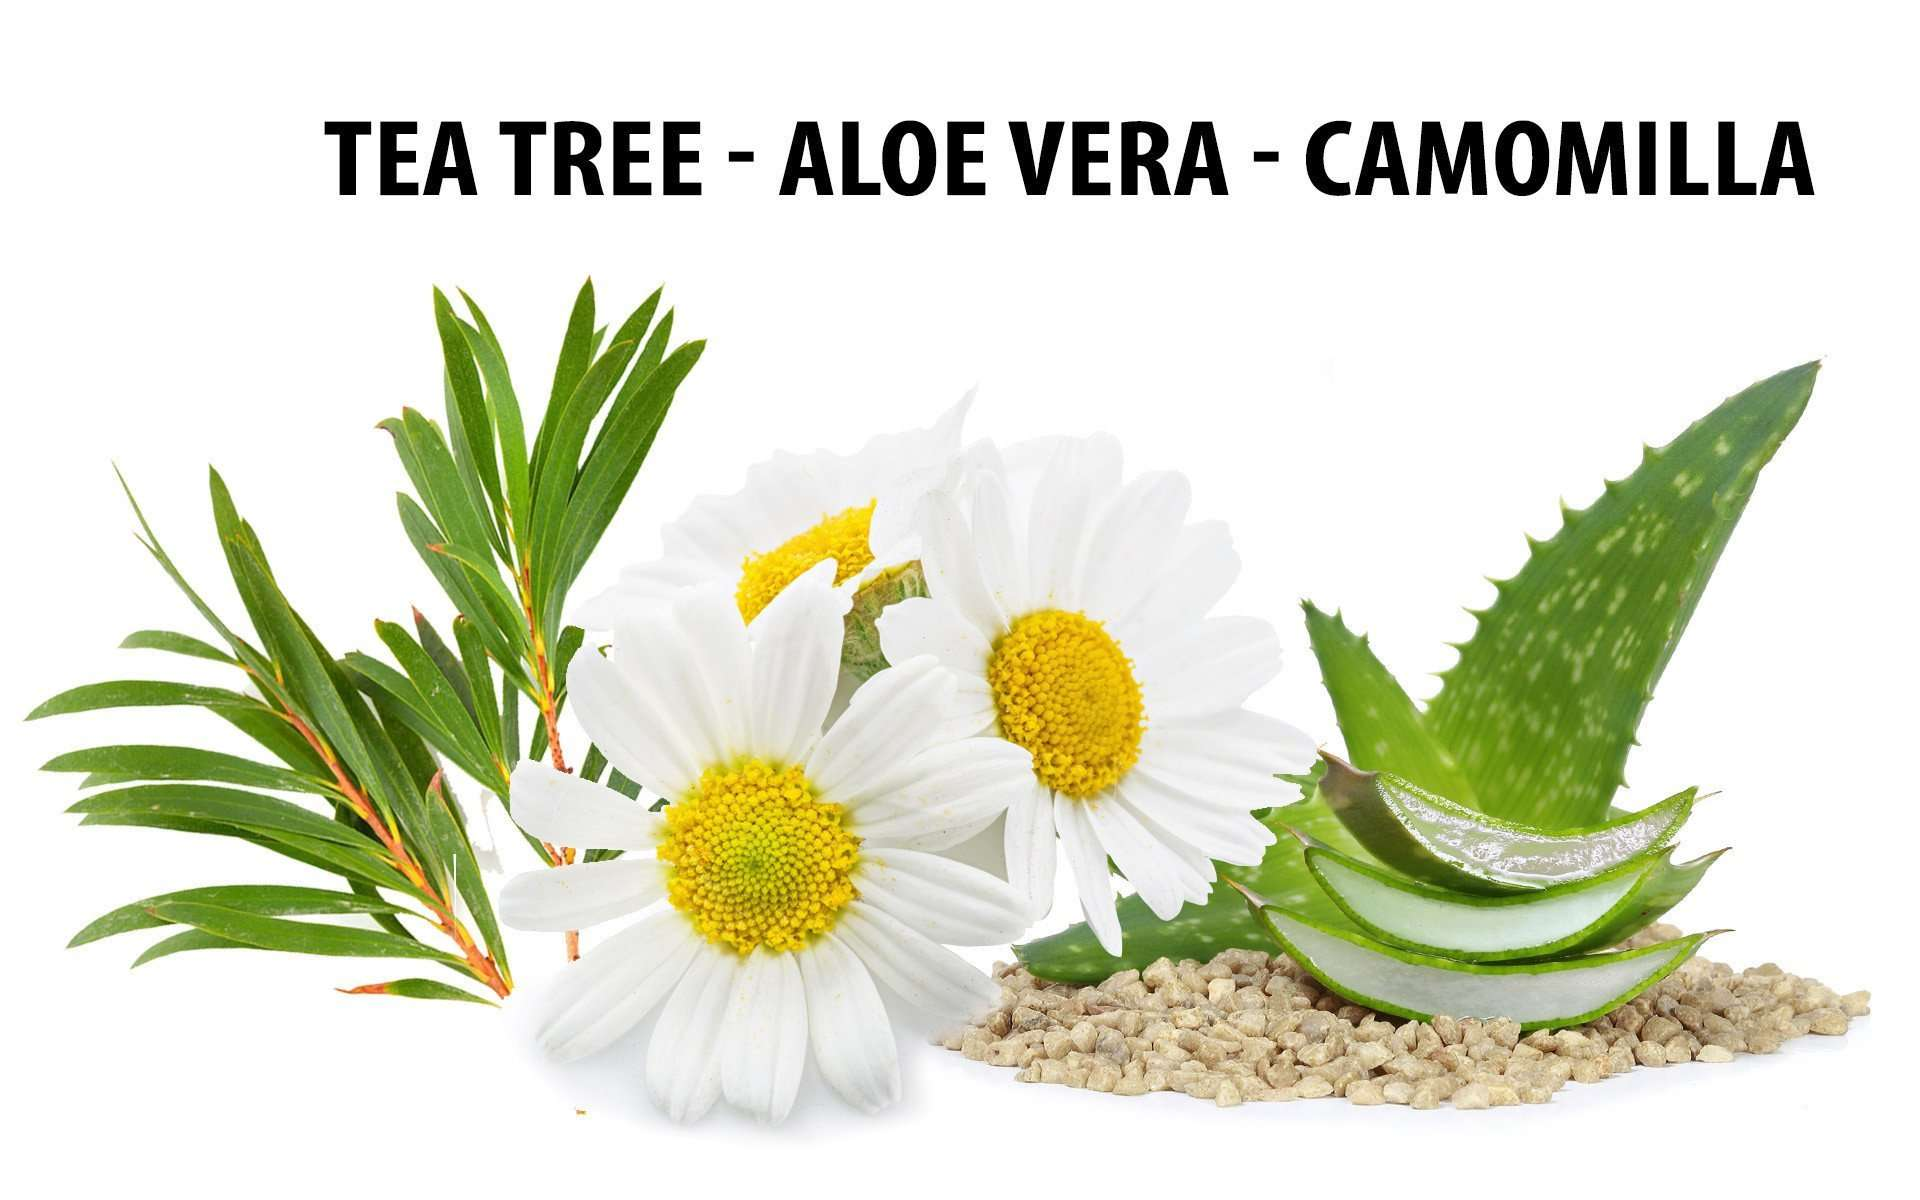 ingredienti antimicrobico (tea tree, aloe vera e camomilla)